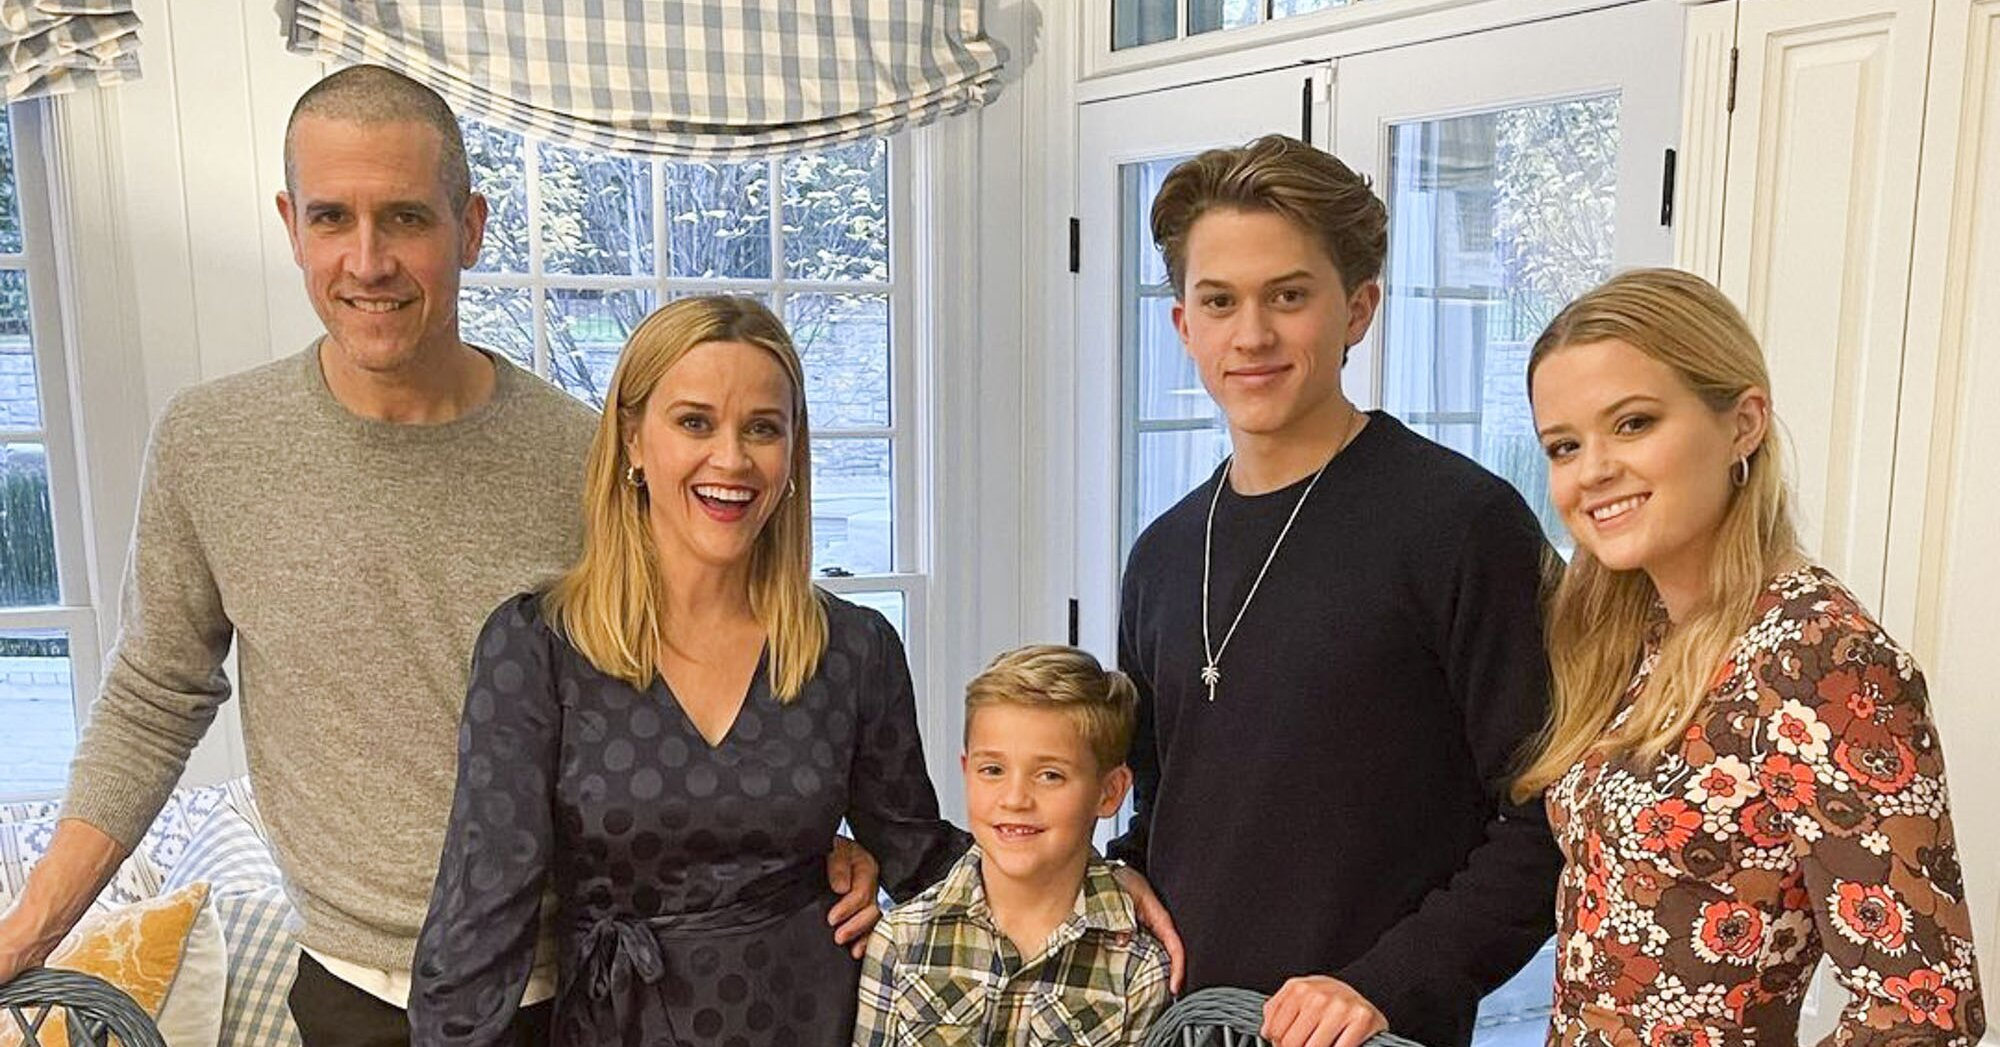 Reese Witherspoon Shares Family Thanksgiving Photo as She Says Thanks Frontline Workers